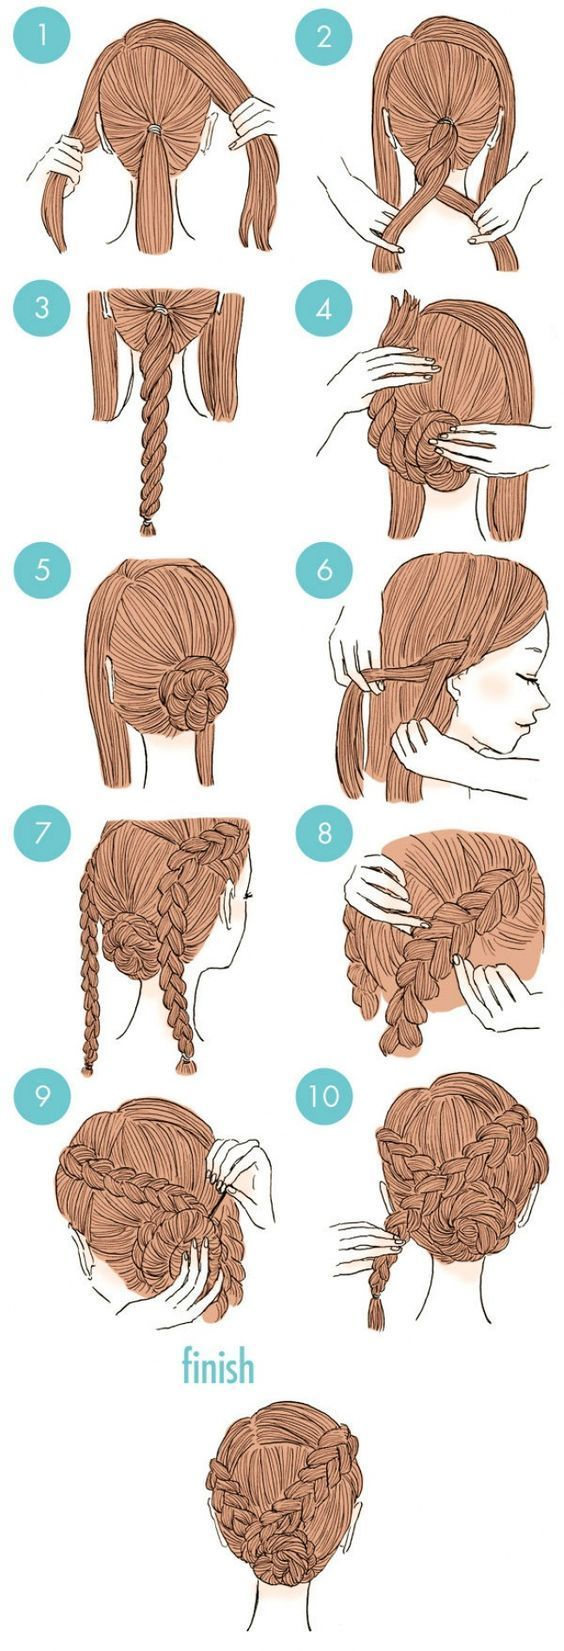 easy wedding hairstyles best photos - wedding hairstyles  - cuteweddingideas.com